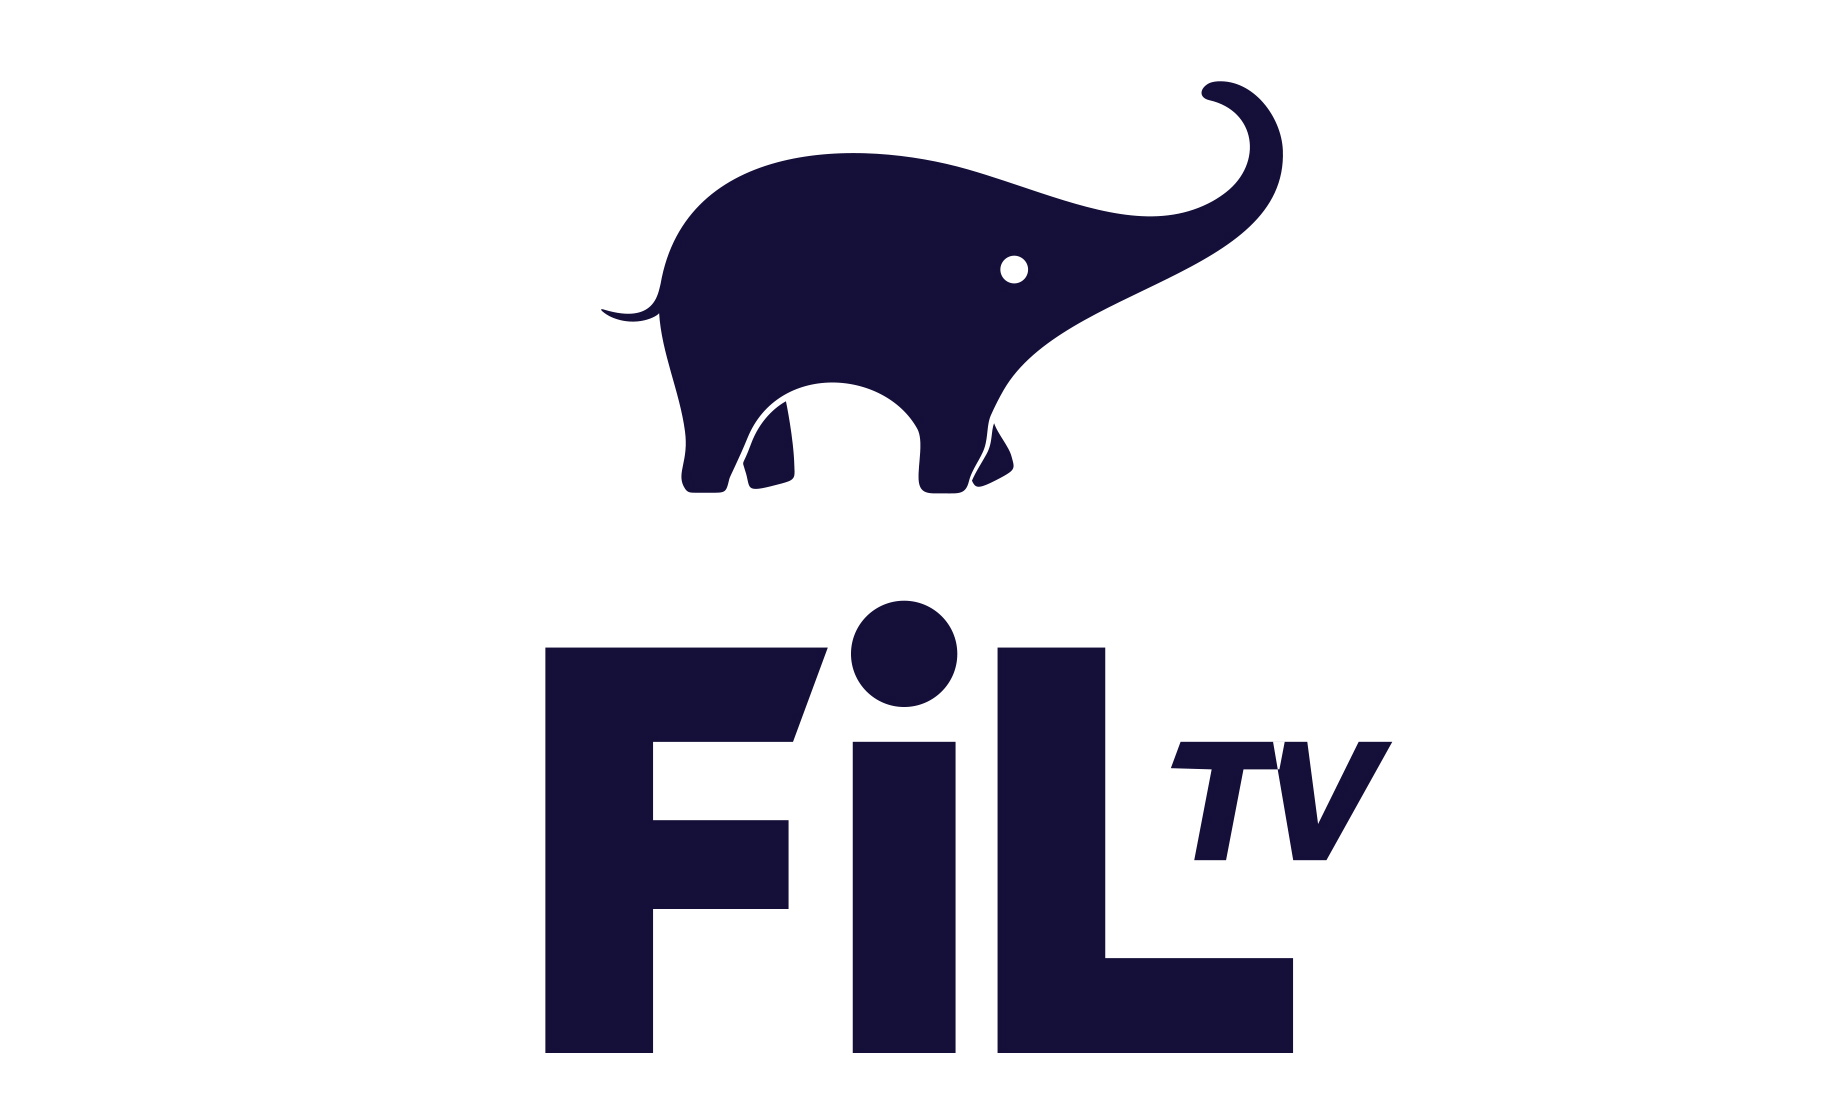 oflaz media group launches fil tv on turksat. Black Bedroom Furniture Sets. Home Design Ideas